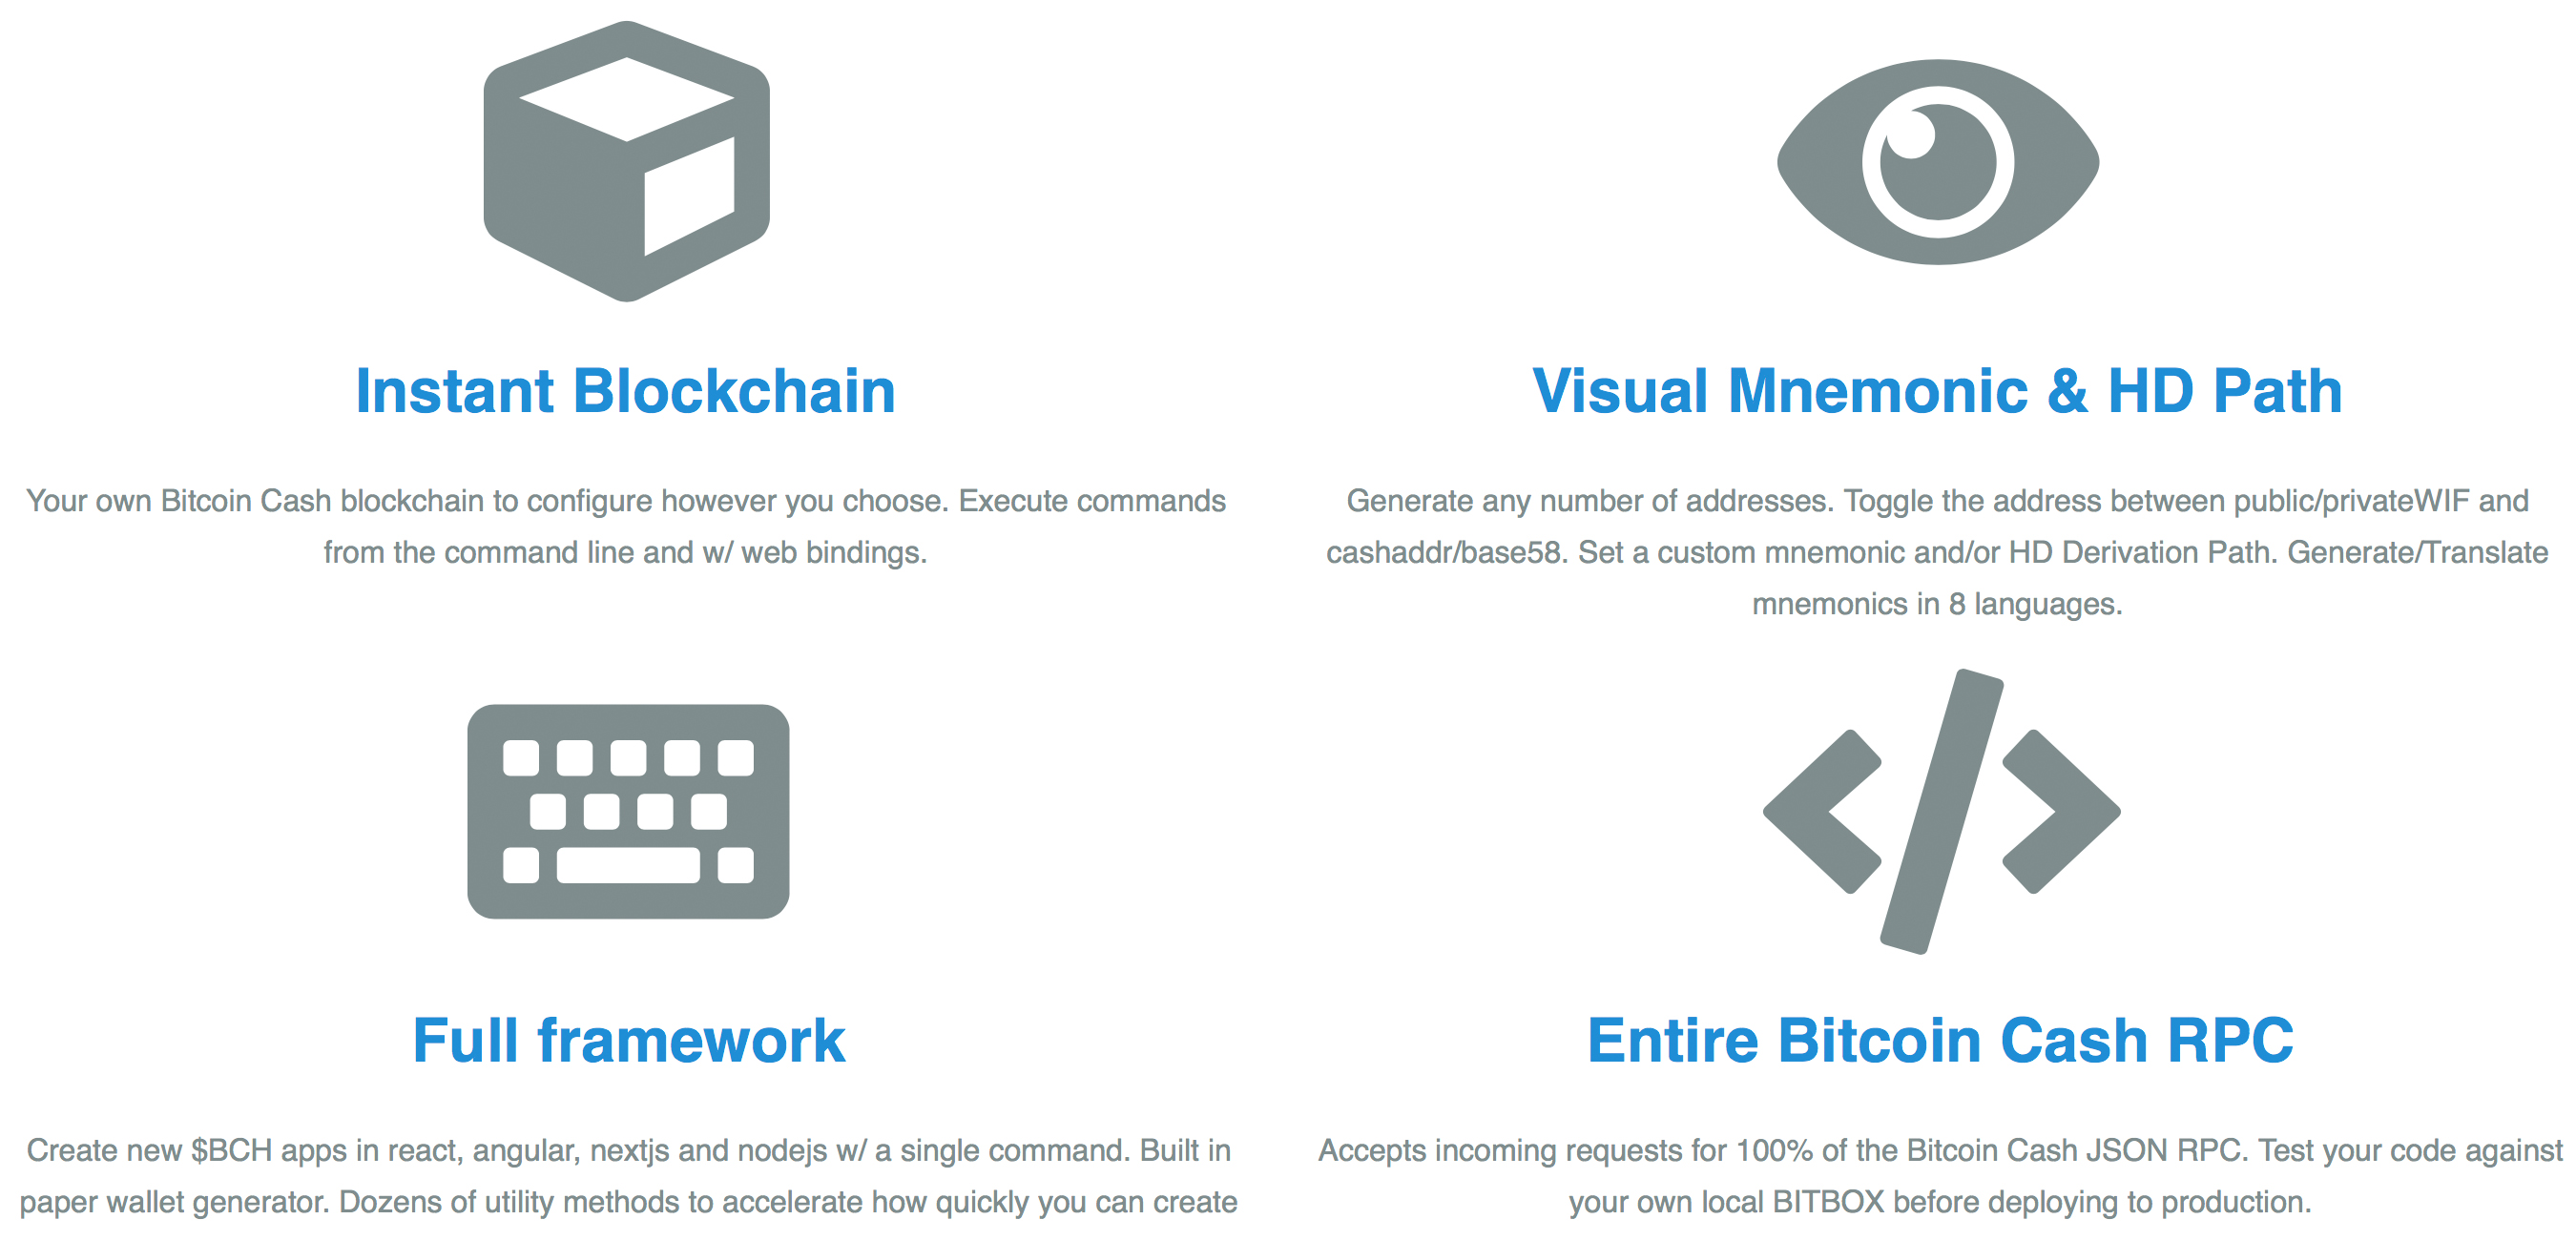 Nodes want to build a killer app for bitcoin cash look no further fandeluxe Image collections